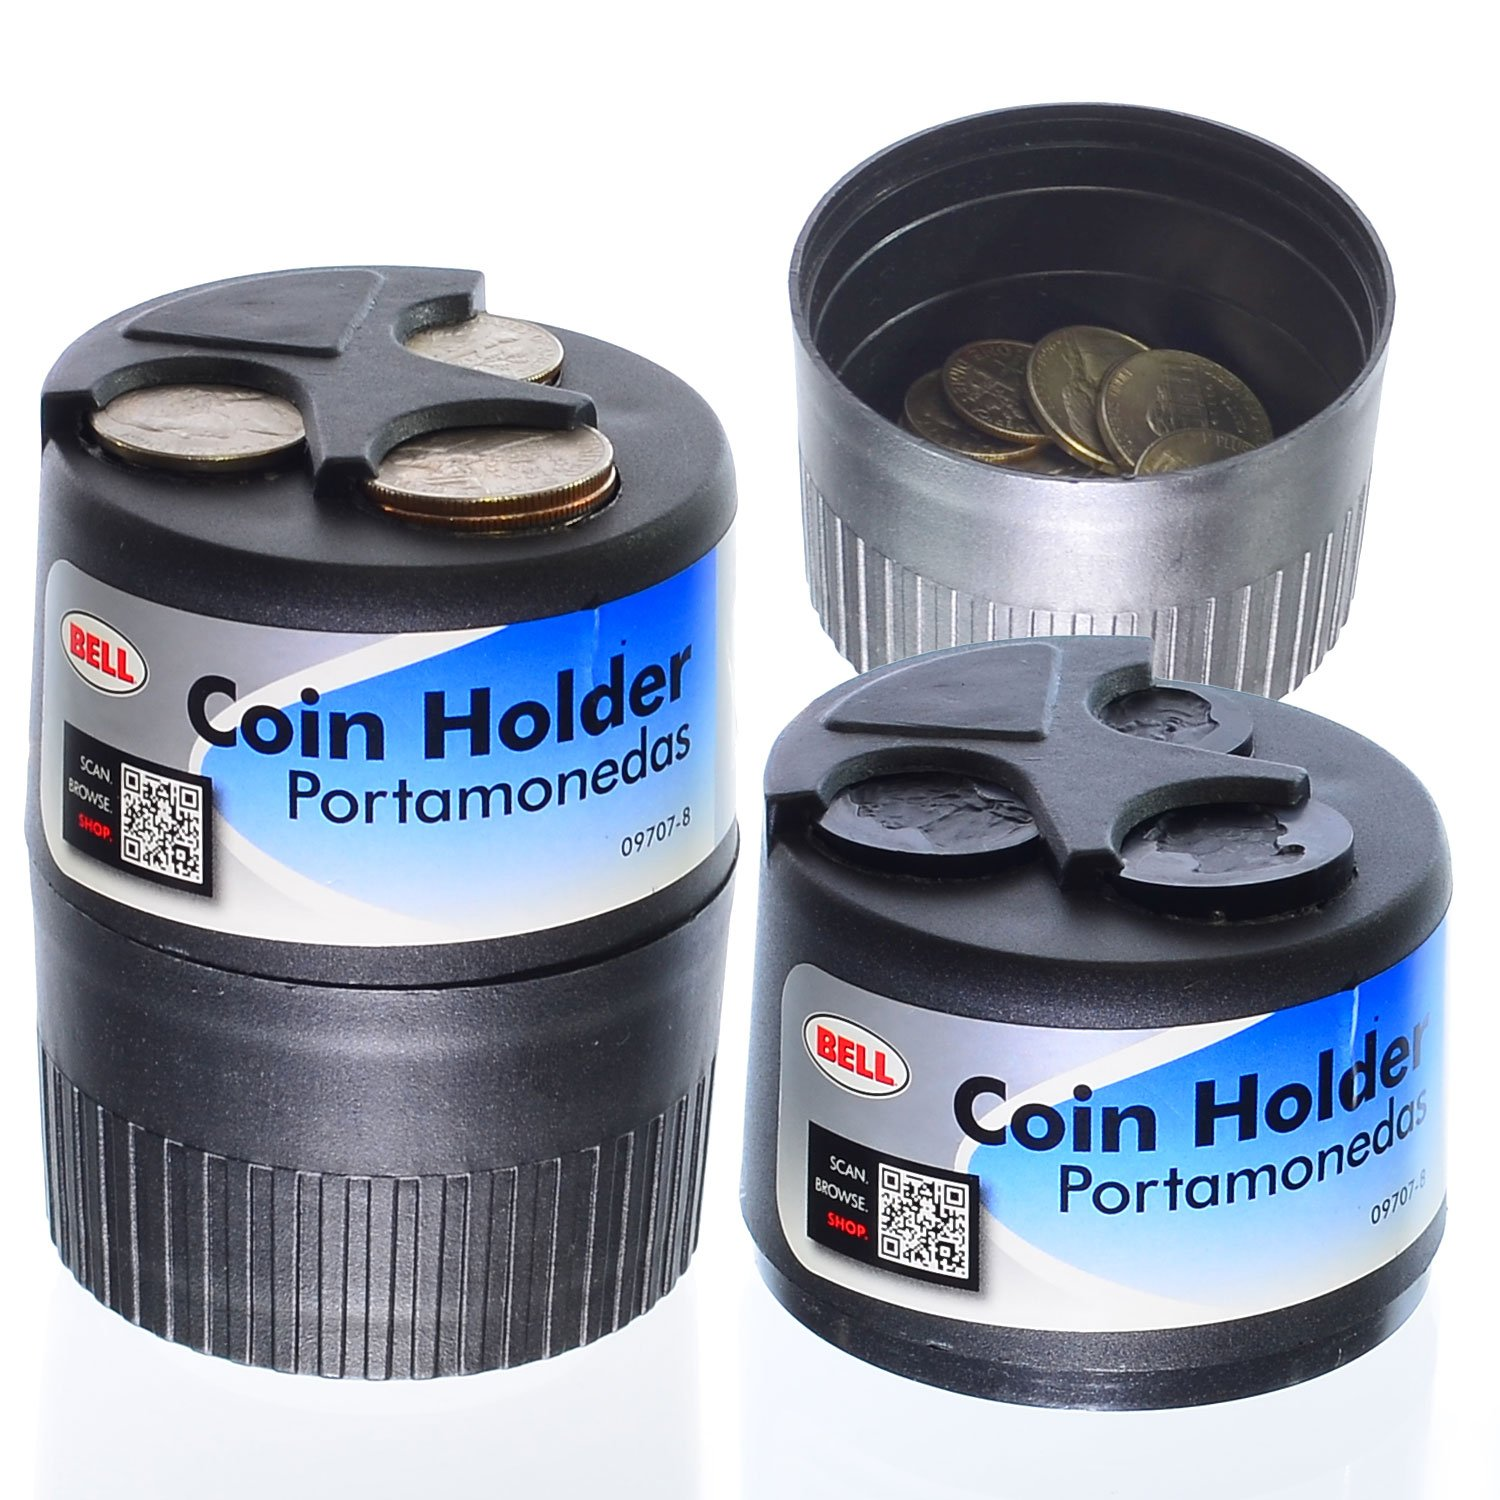 Bell Retrofit Coin Organizer/Lose Change Holder with Hidden Coin Dump Bowl, Fits in Drink Cup Holder 1450